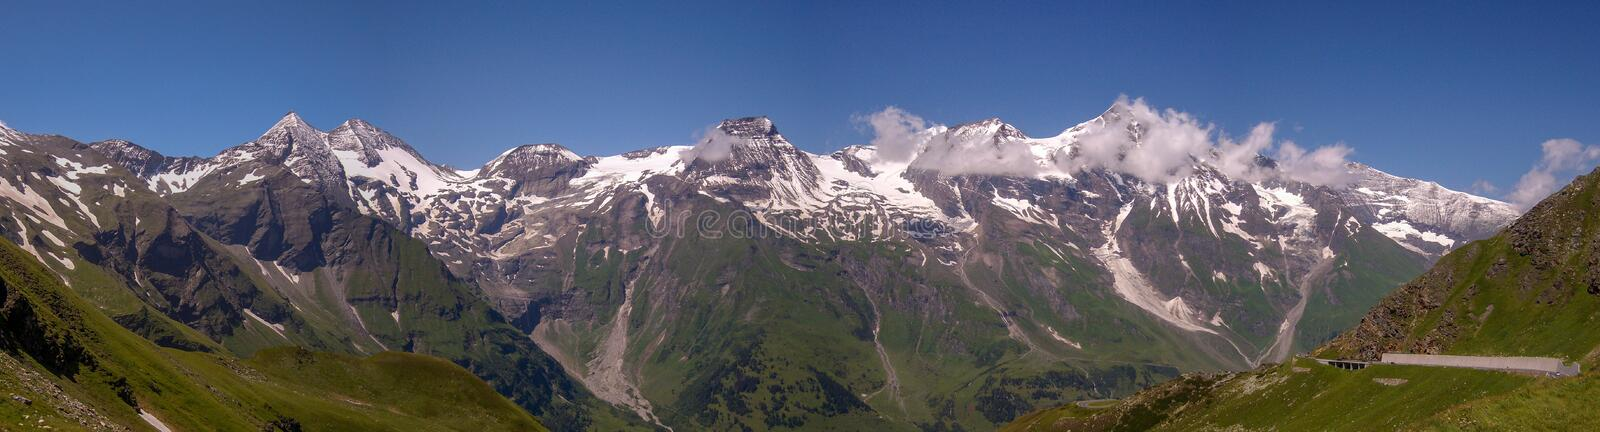 Panorama of the Austria Alps from the Grossglockner high Alpine Road stock images